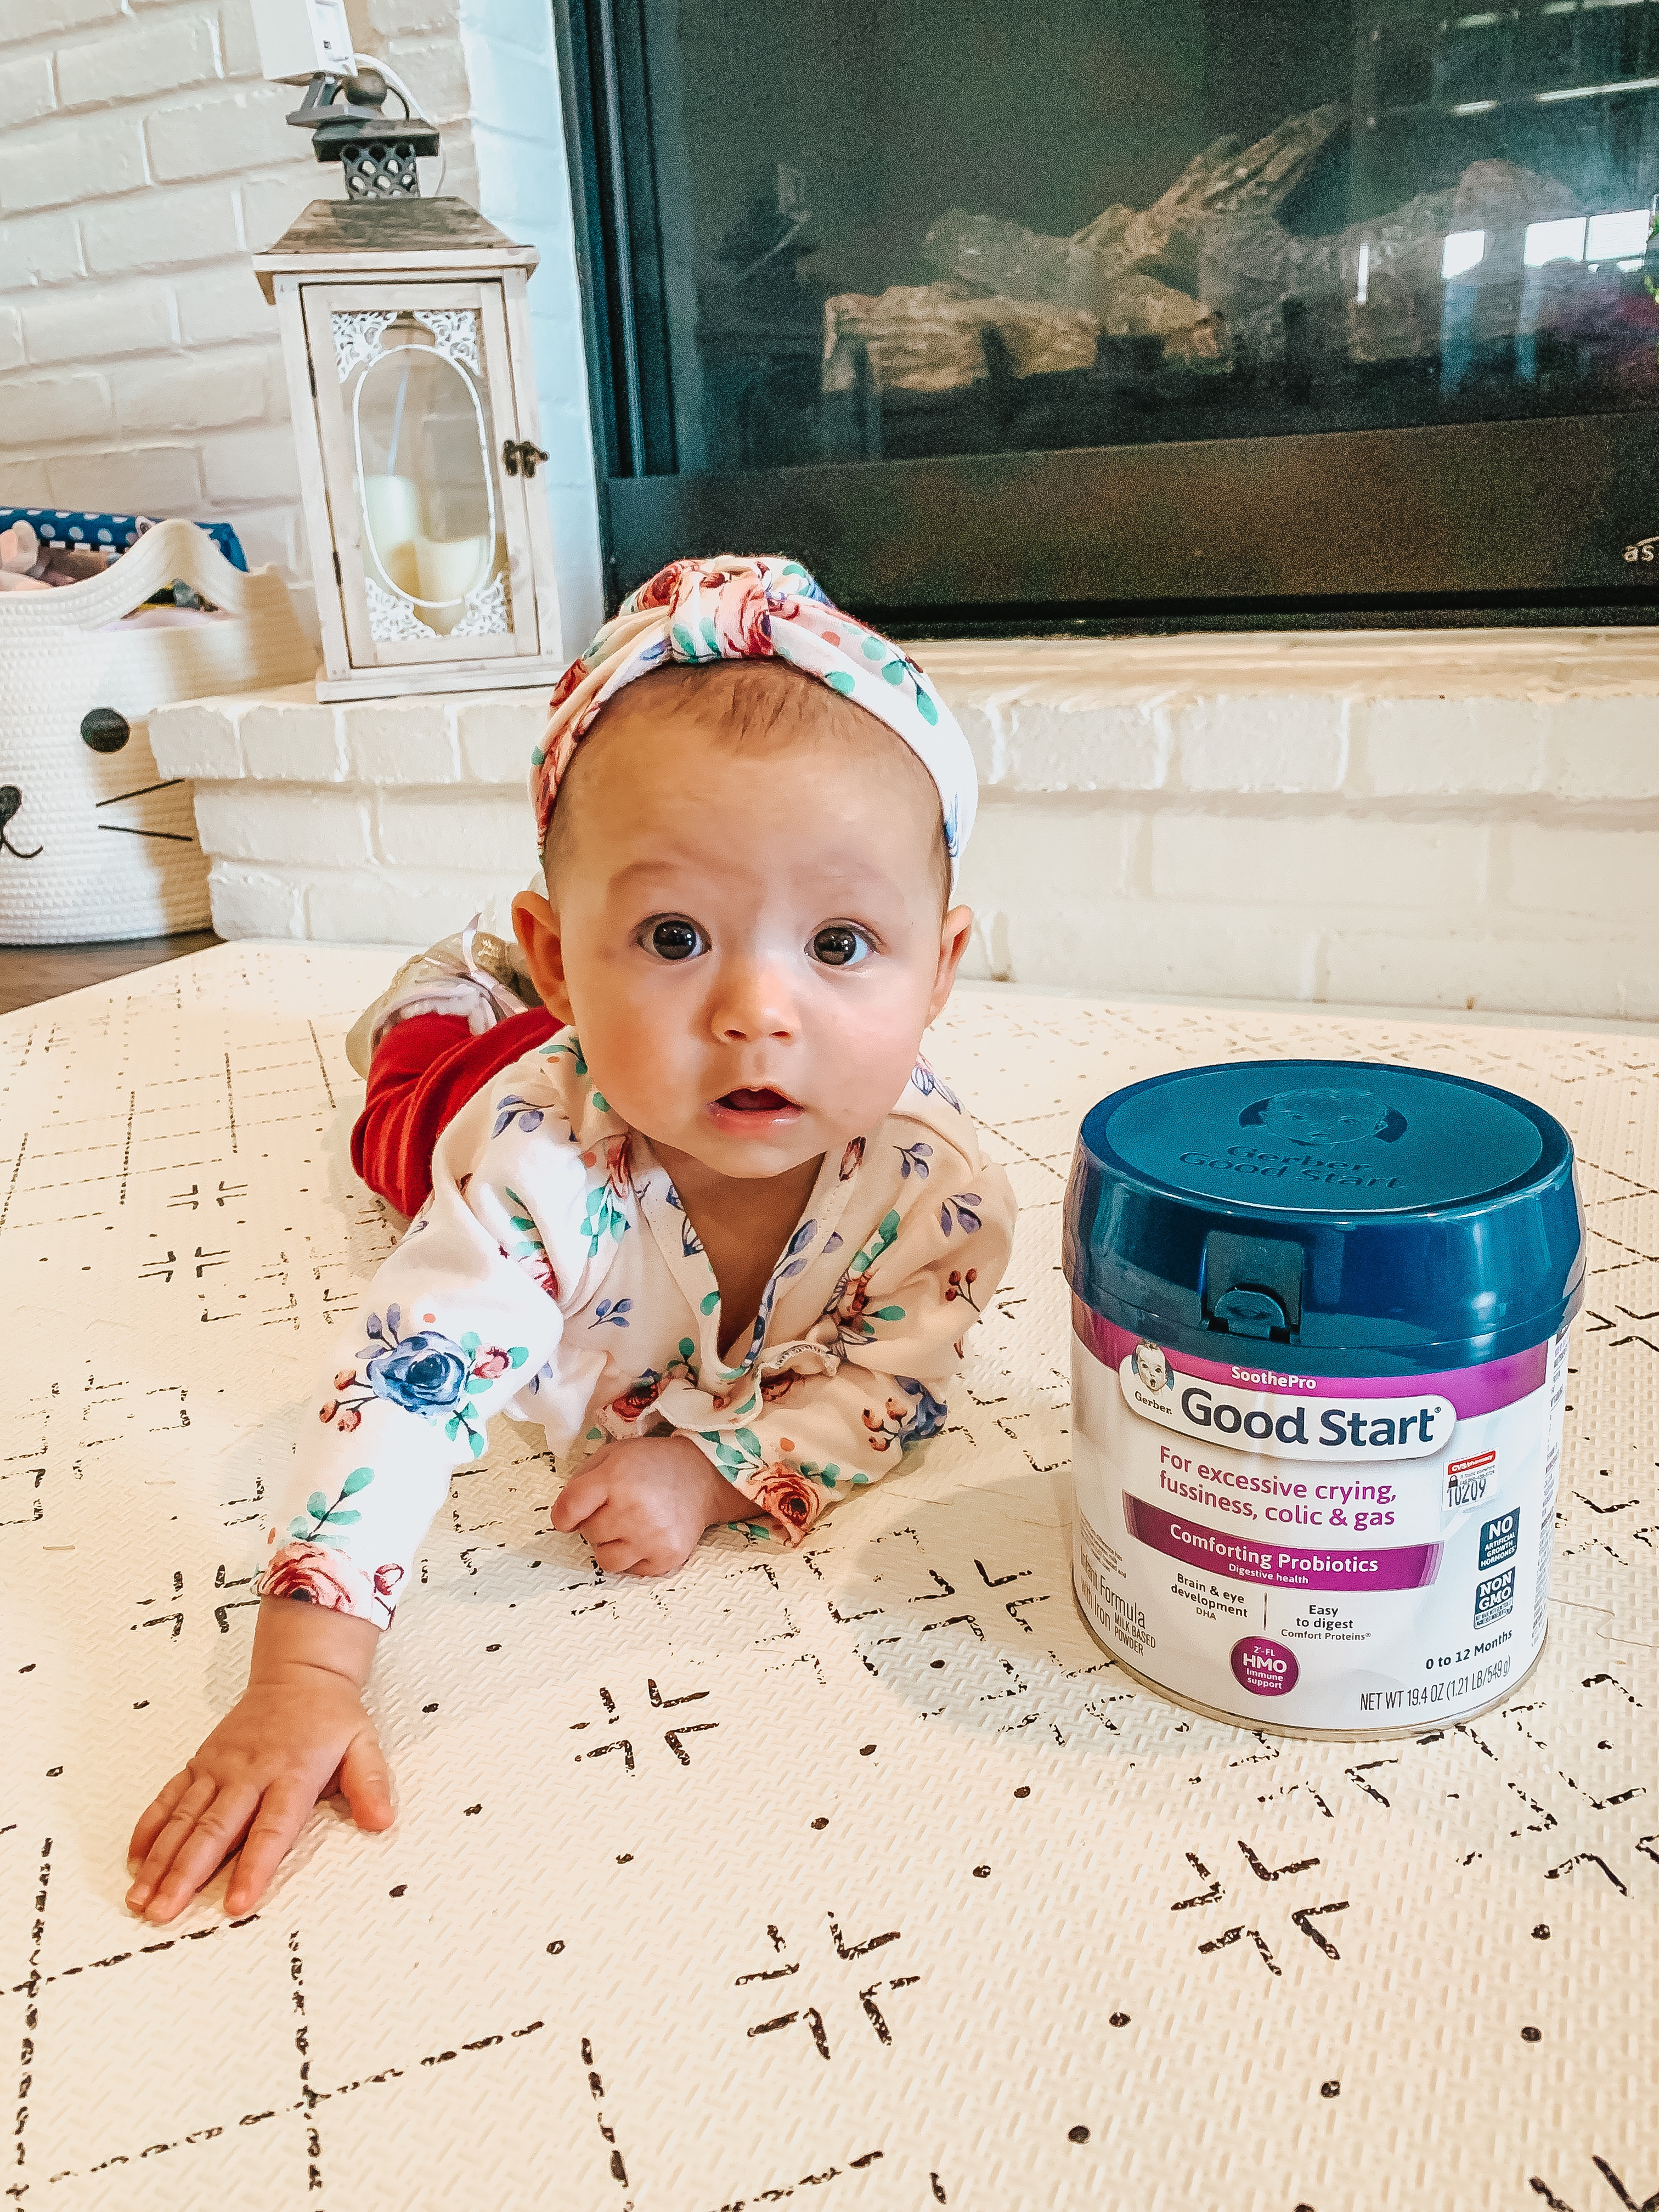 How we supplement and ease baby's excessive fussiness